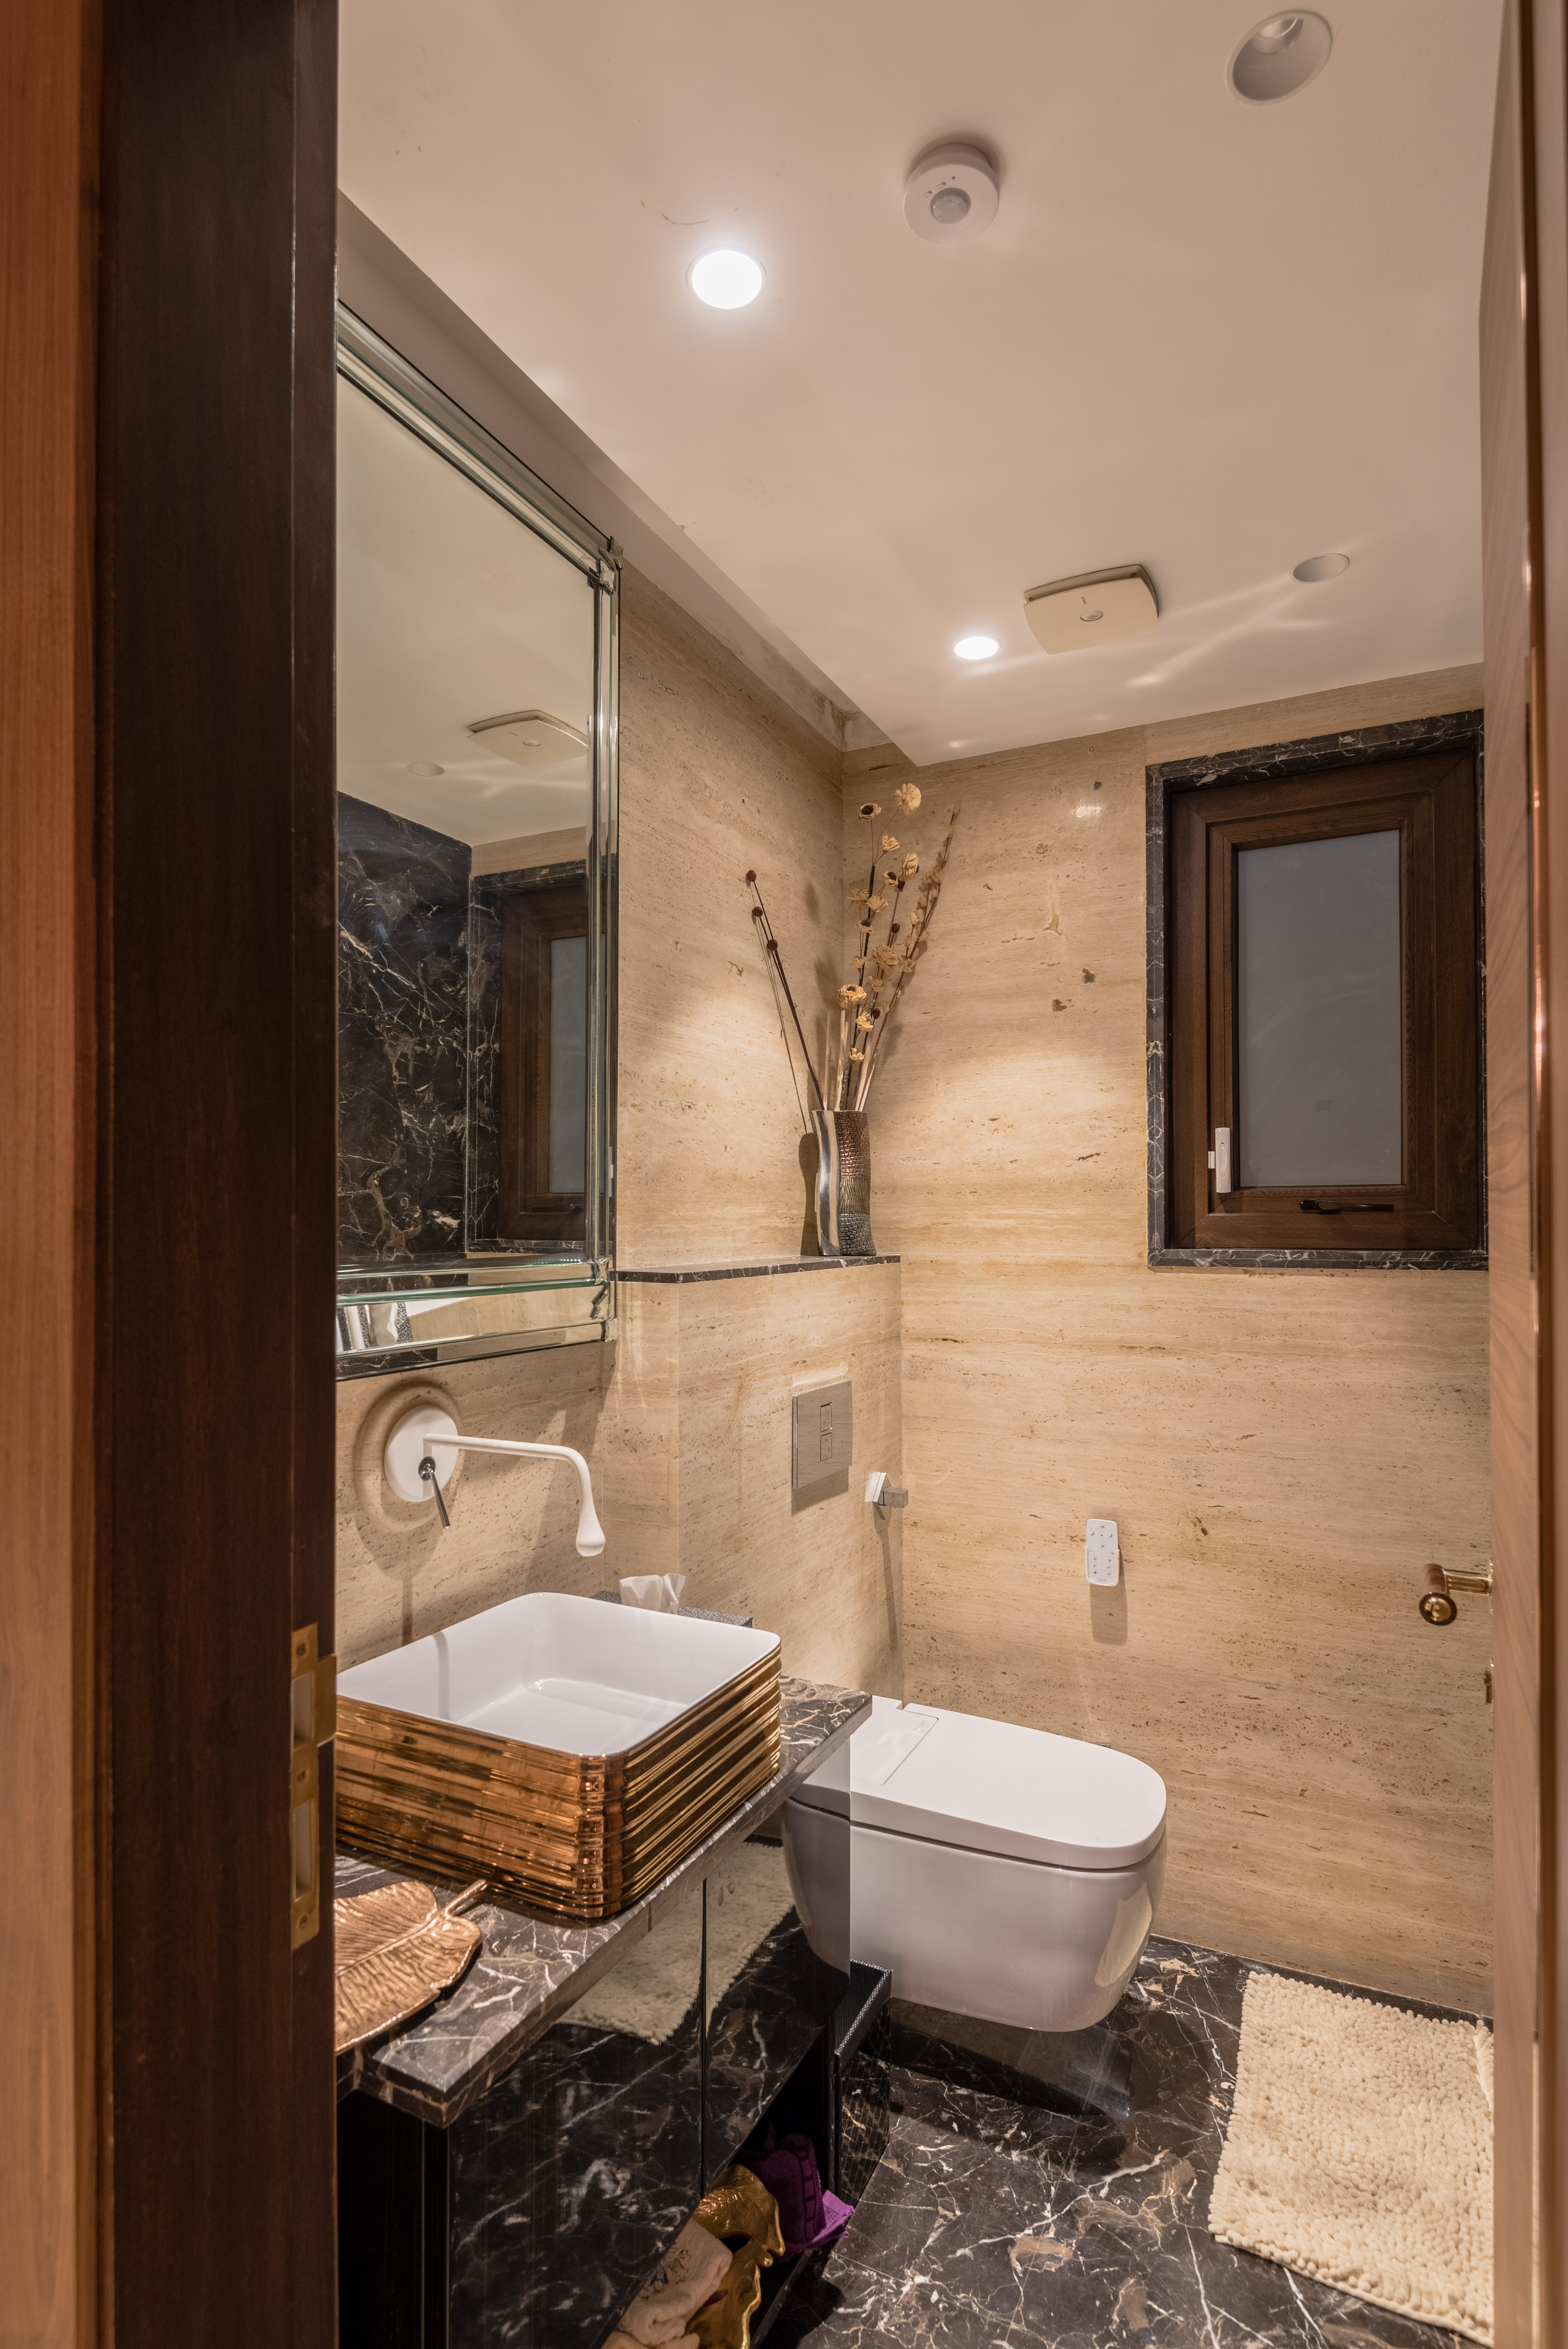 Bathroom Design: Experts revel ways to design this space ... on Restroom Ideas  id=46372